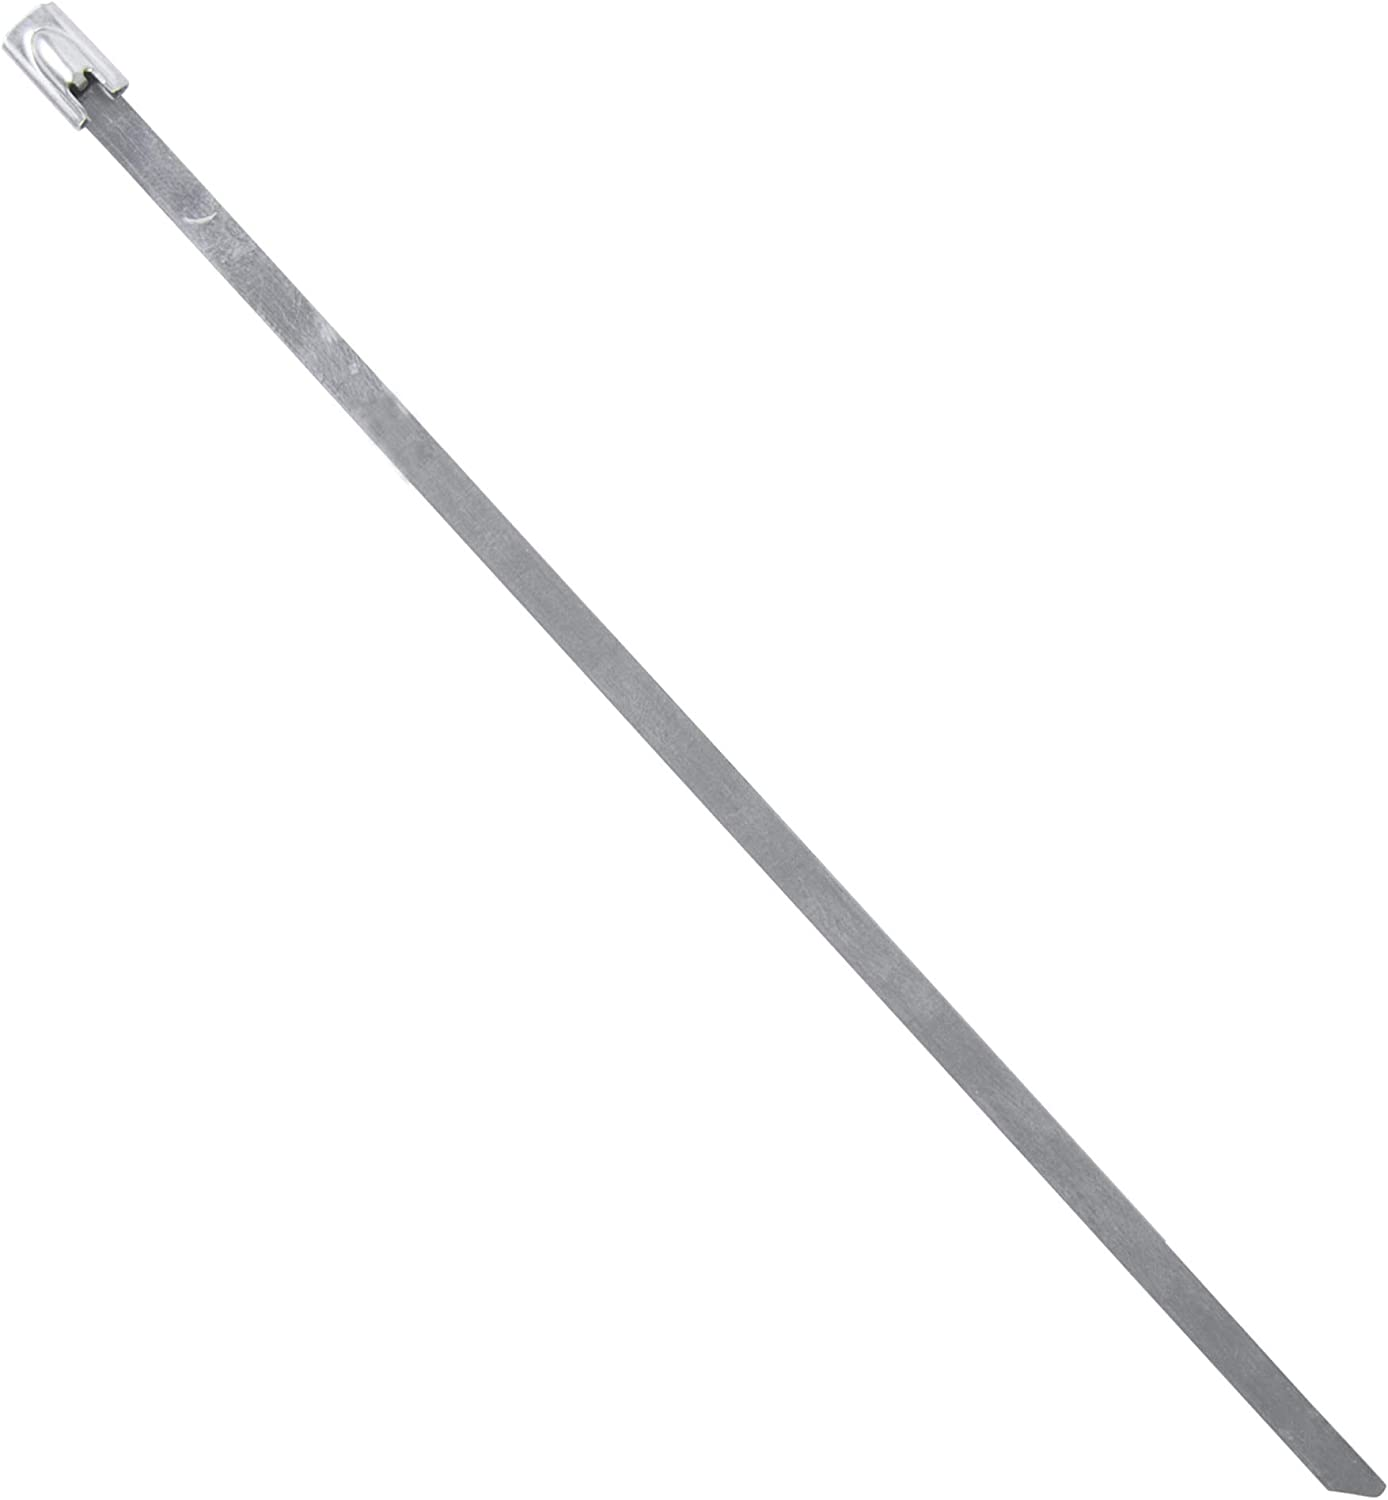 Gardner Bender 45-306SS Stainless Steel Cable Tie, 6 Inch., 100 lb. Tensile Strength, Wire / Cord Management Industrial and Household Use, Metal Zip Tie, 10 Pk.